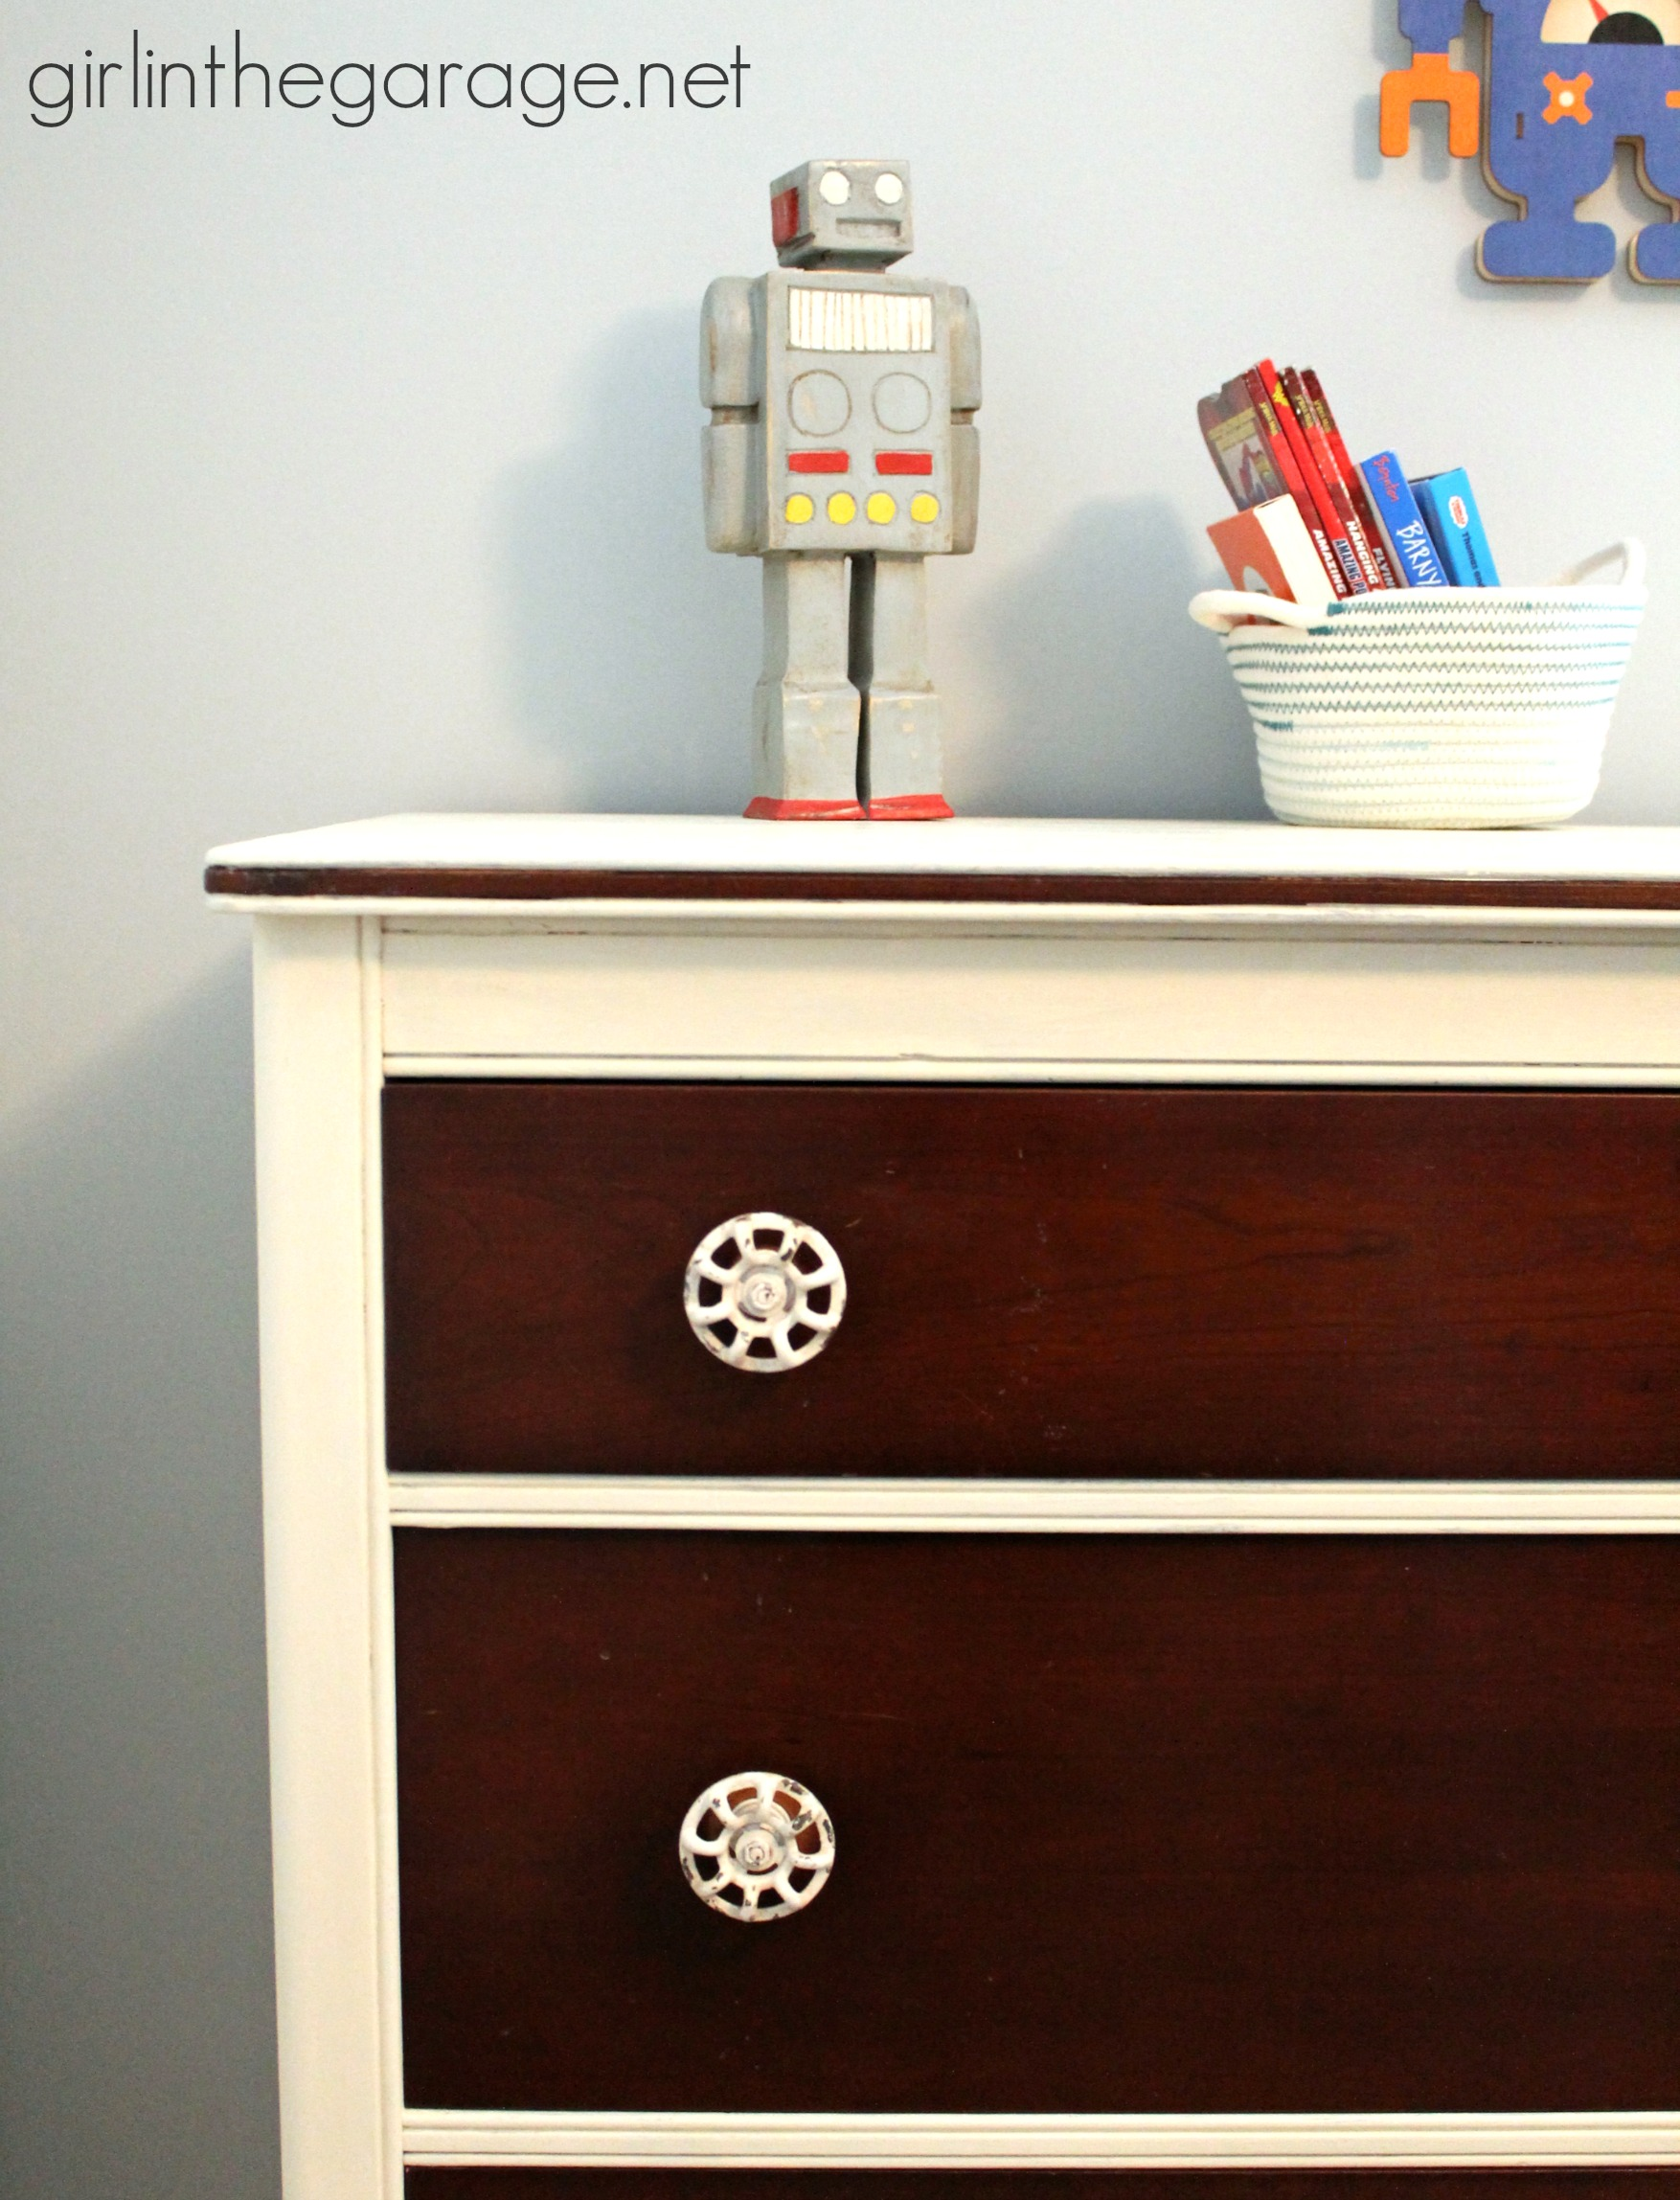 How To Remove Wooden Desk Drawers, How To Remove Wooden Drawer Pulls, How To Renovate Old Wooden ...